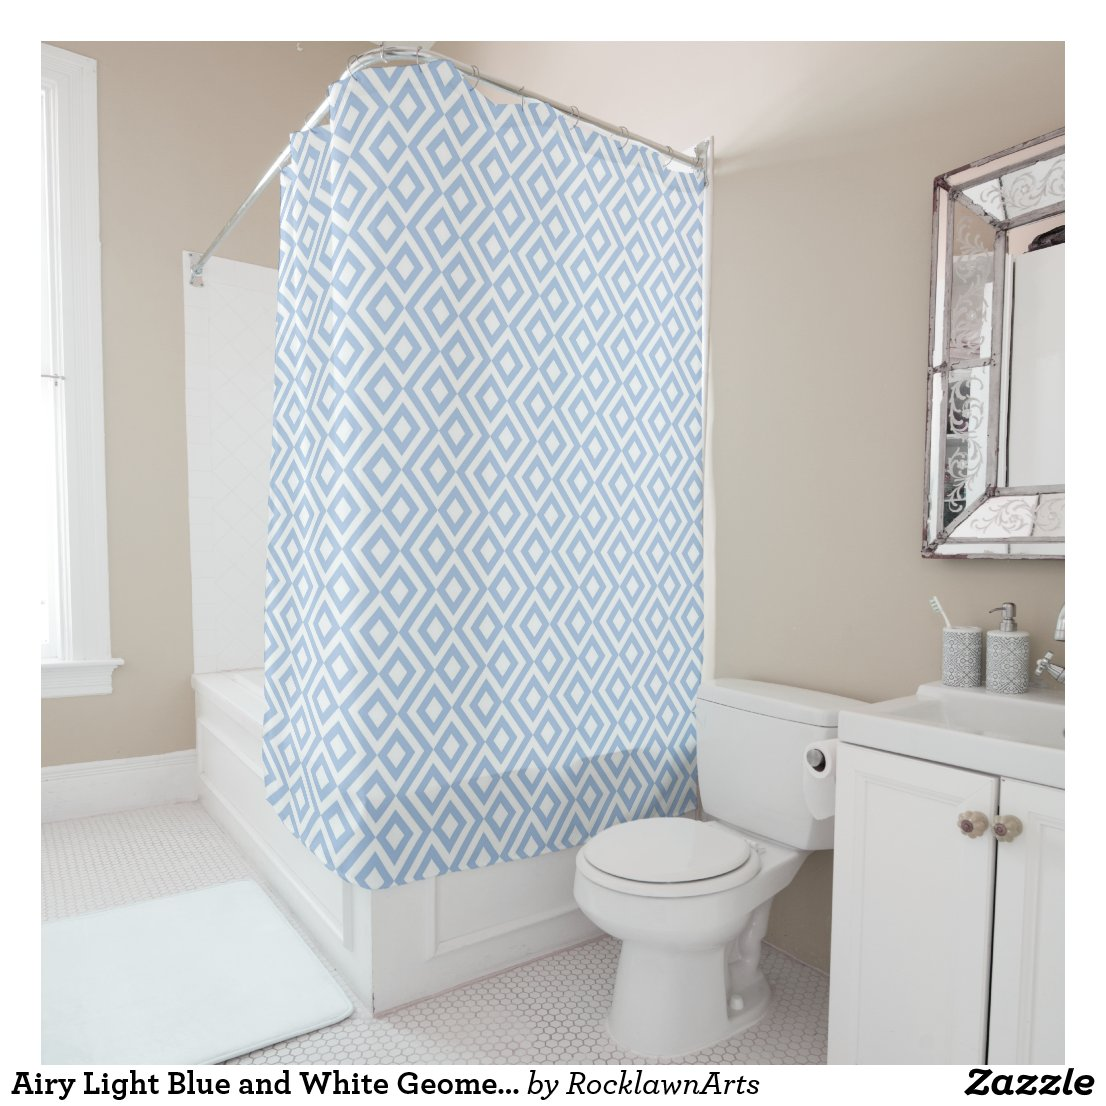 Airy Light Blue and White Geometric Meander Shower Curtain